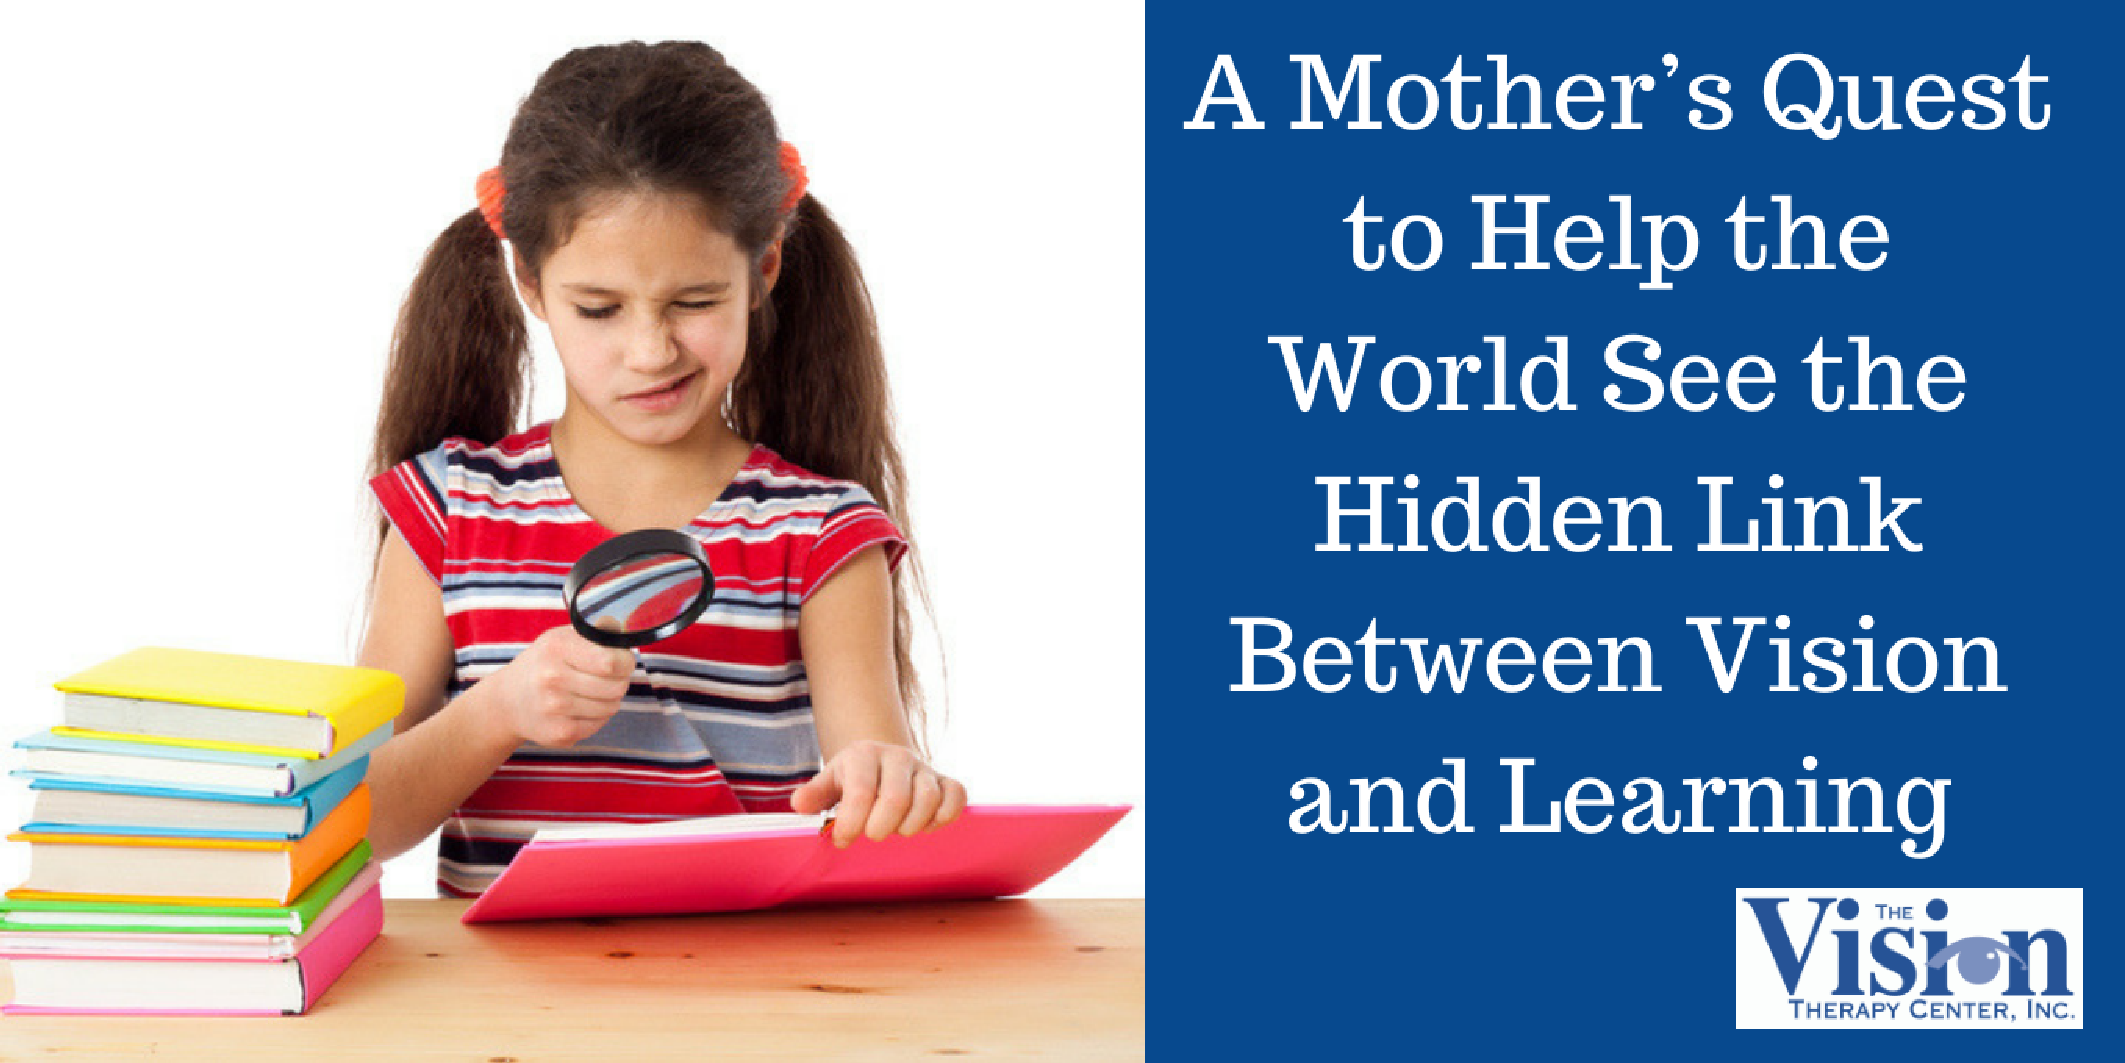 The Link Between Learning And Child >> A Mother S Quest To Help The World See The Hidden Link Between